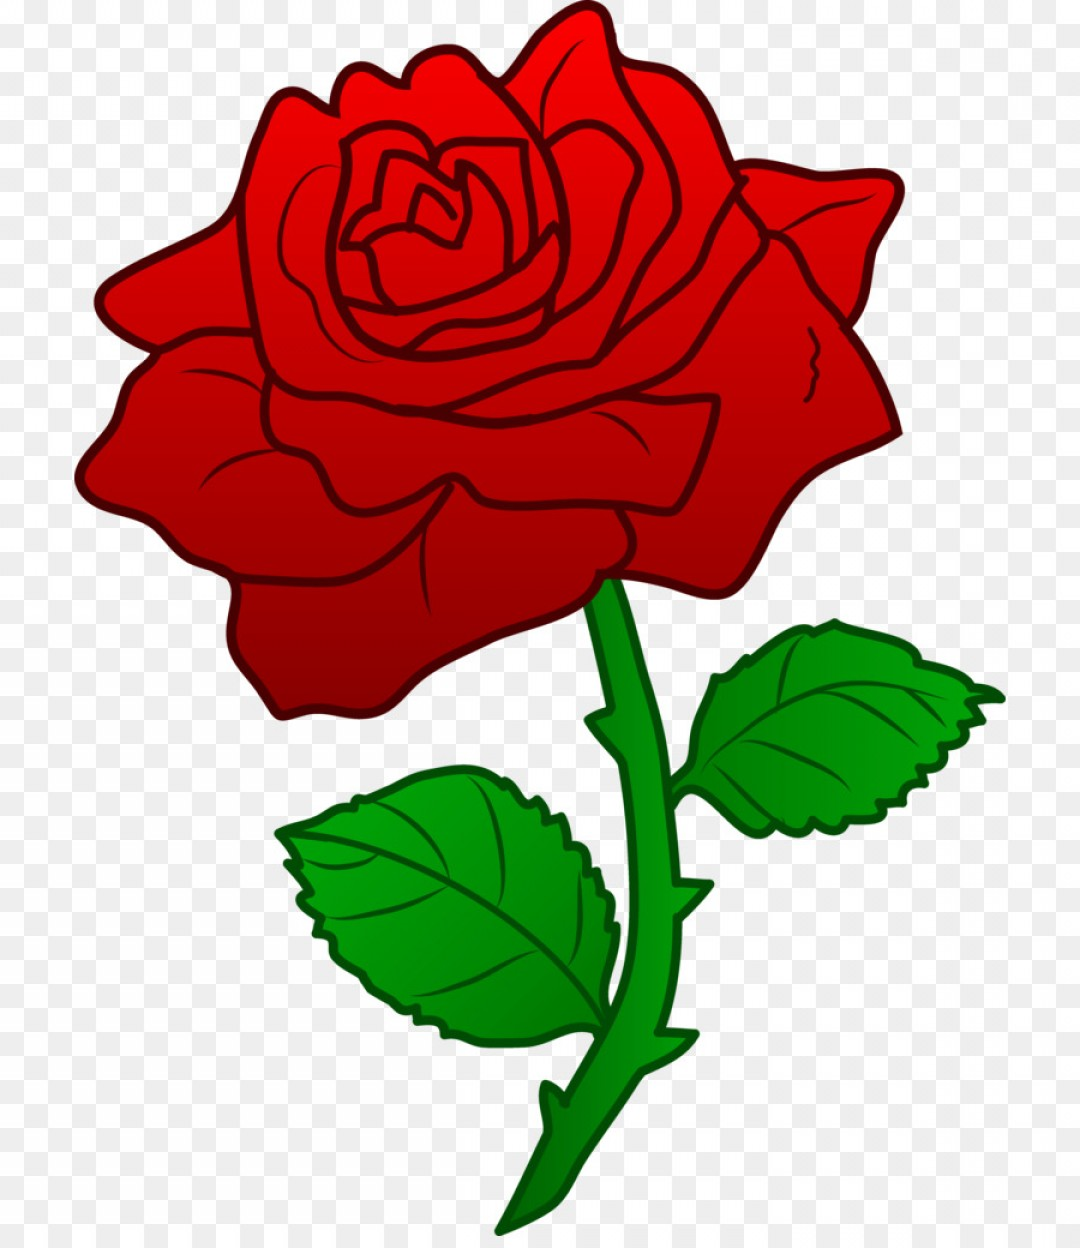 1080x1248 Png Rose Flower Clip Art Beauty And The Beast Png Pict Shopatcloth